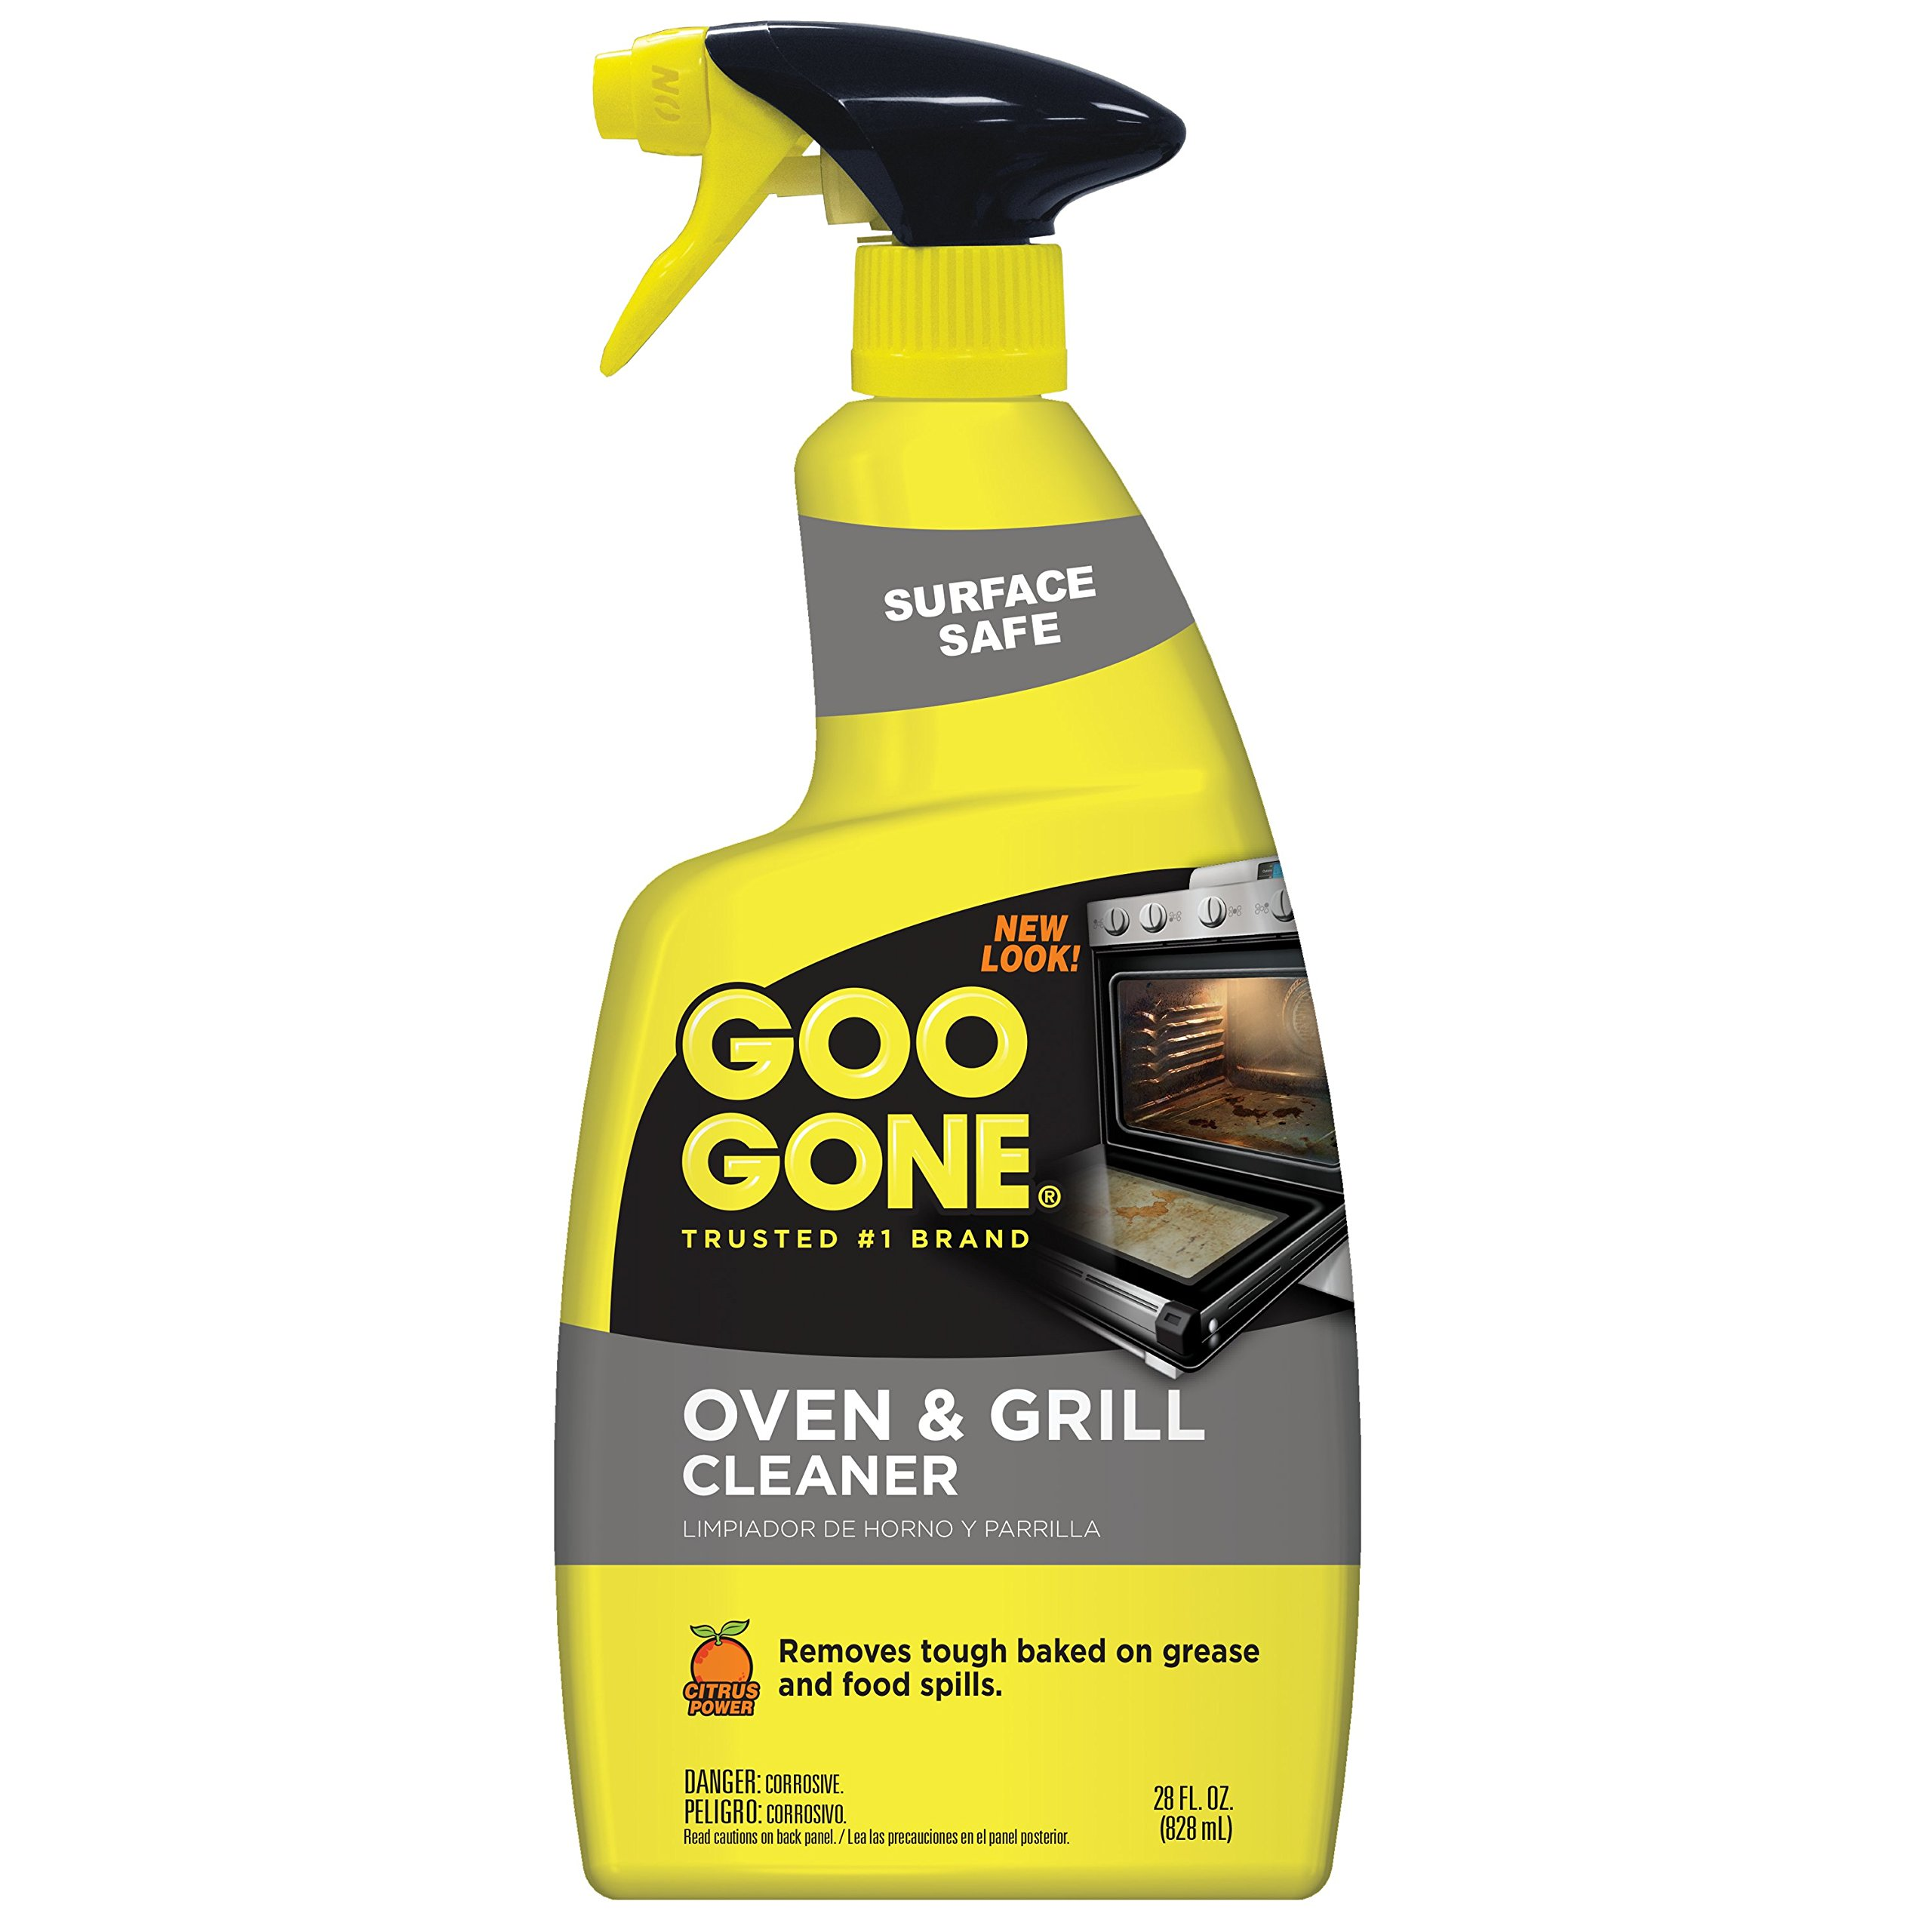 Goo Gone Oven and Grill Cleaner - 28 Ounce - Removes Tough Baked On Grease and Food Spills Surface Safe by Goo Gone